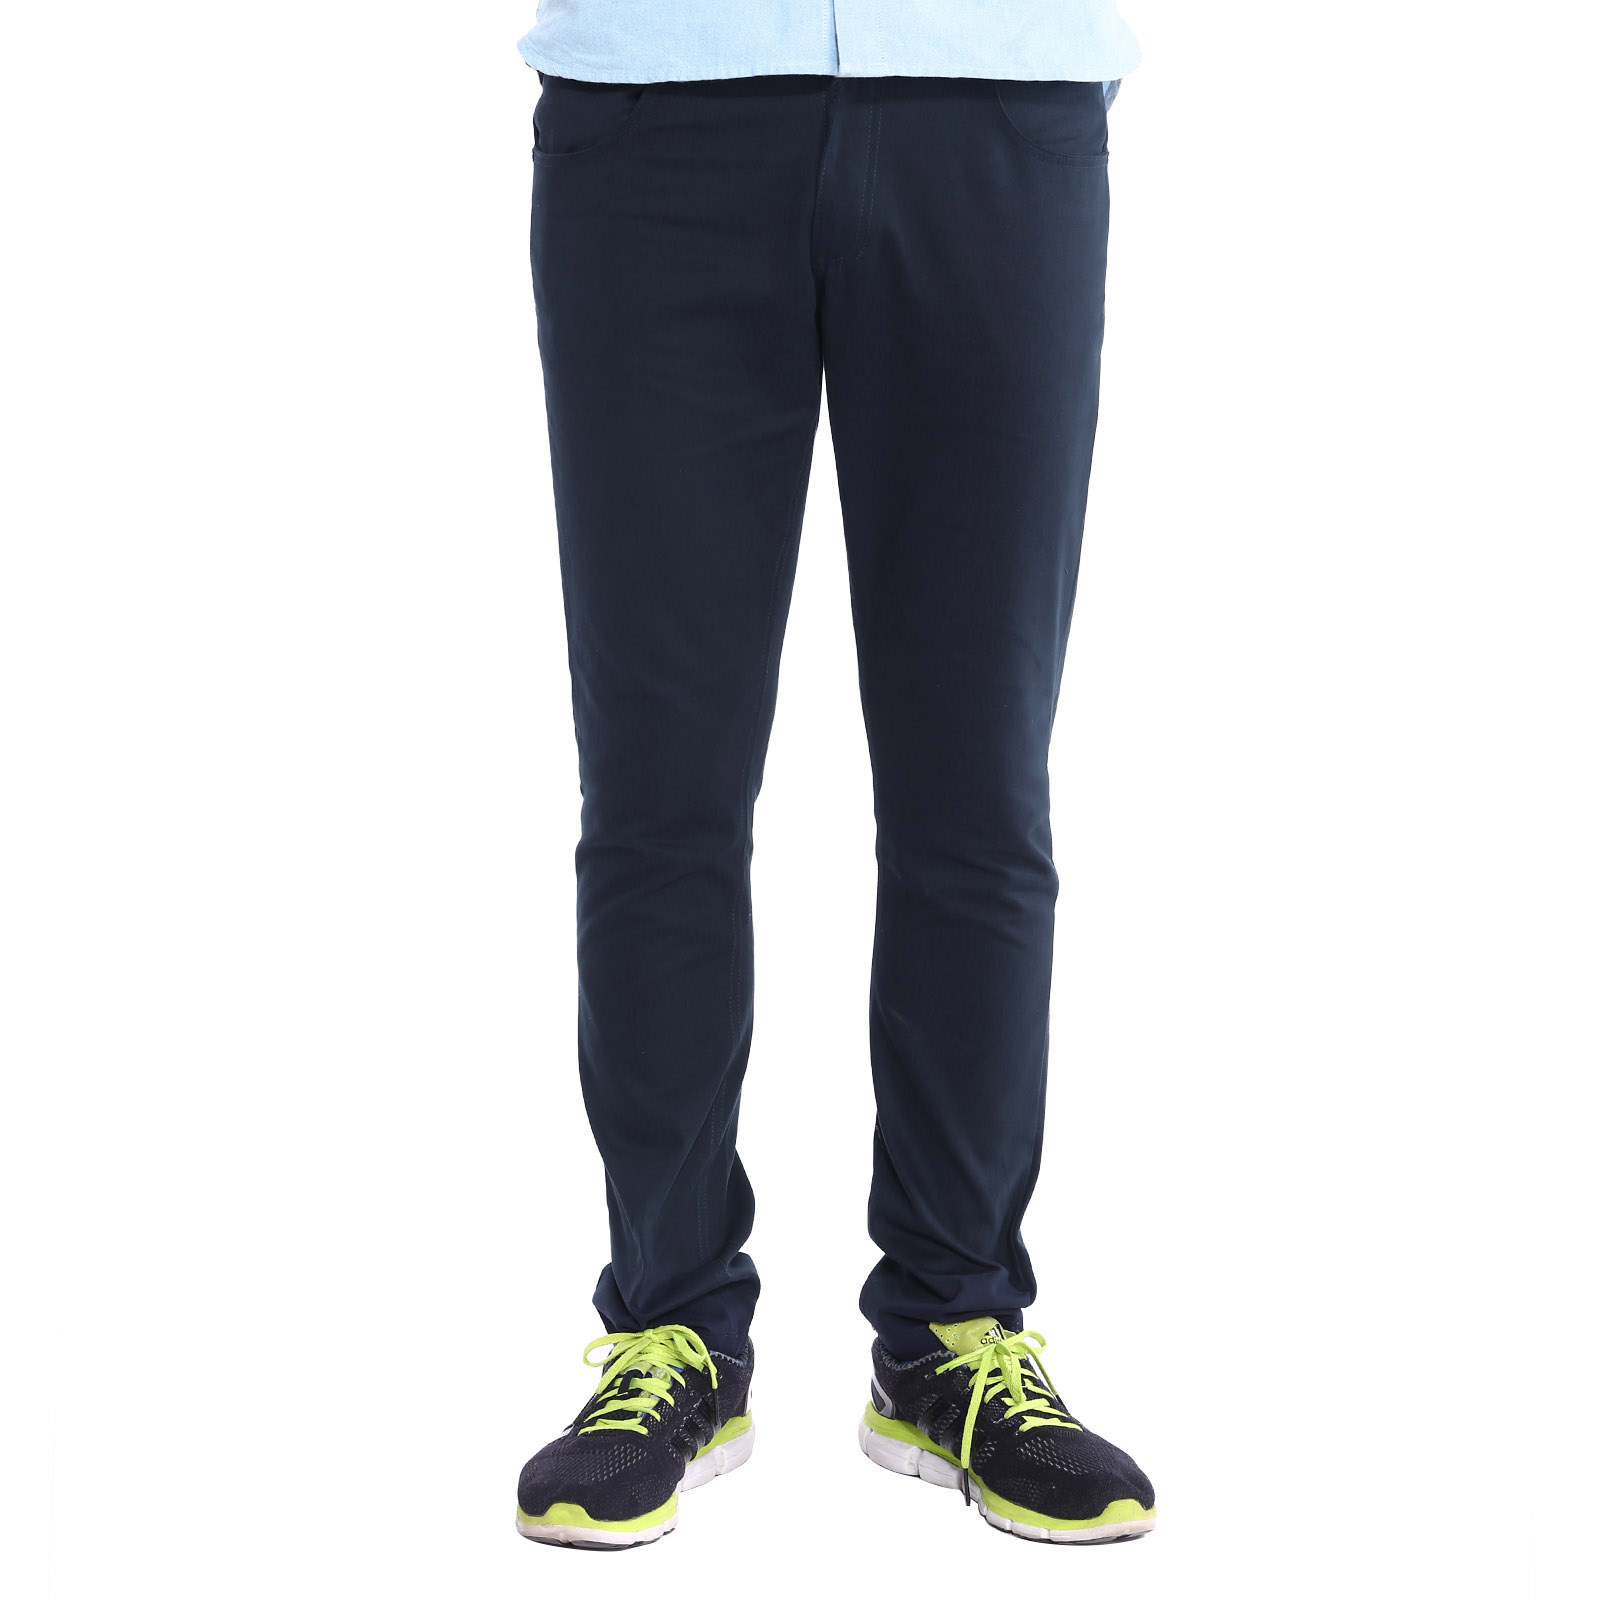 Boys Slim Fit School Trousers Skinny Leg Mens Formal Office Work Grip Waistband. $ From India. Buy It Now. Free Shipping. SPONSORED. Girls skinny school trousers invisible zip Ladies Women office stretch black blu. Brand New. $ From United Kingdom. Buy It Now +$ shipping.